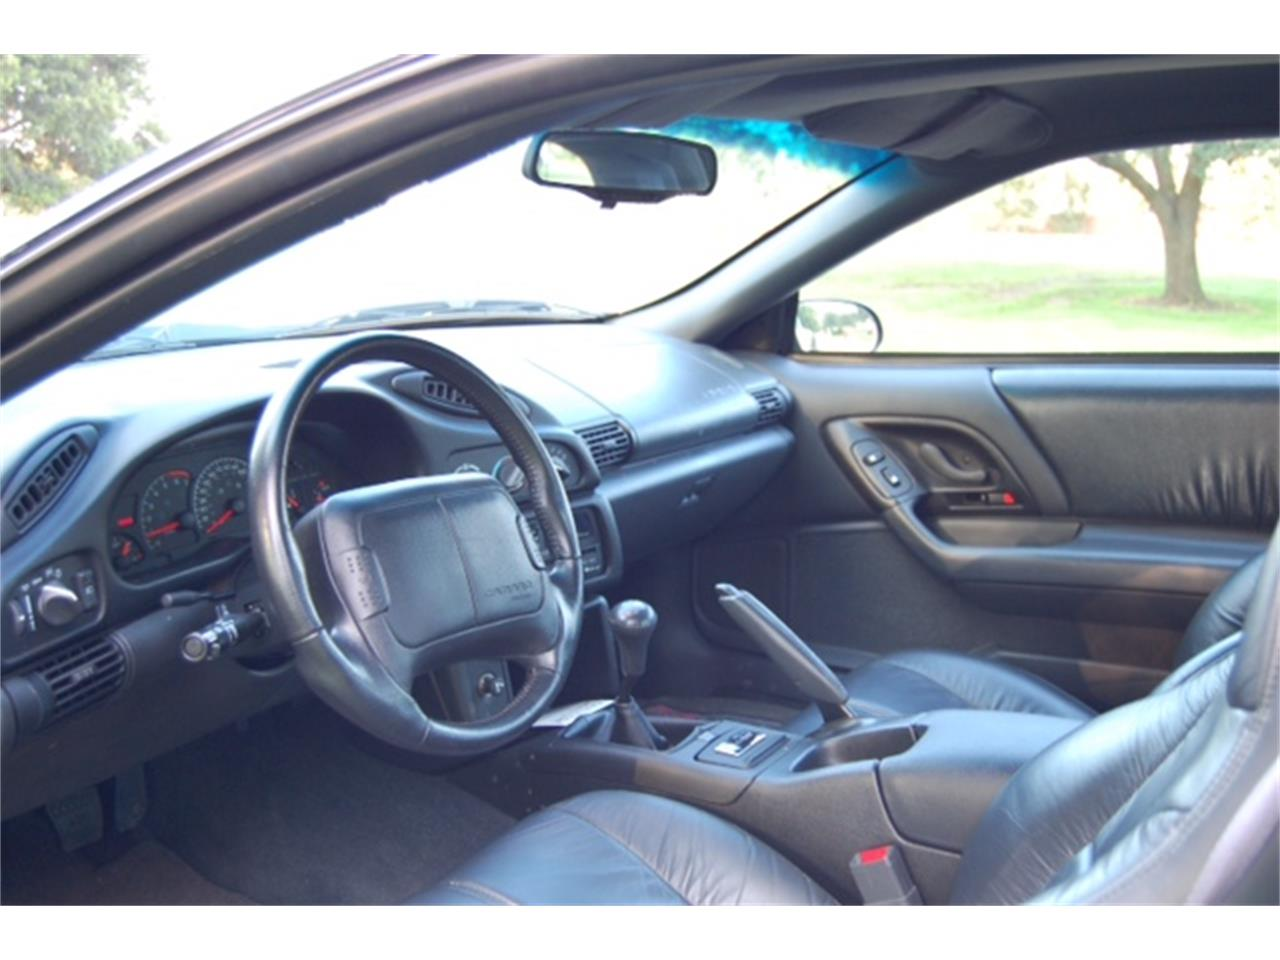 Large Picture of '96 Chevrolet Camaro SS located in Louisiana - $20,000.00 Offered by a Private Seller - O8FP